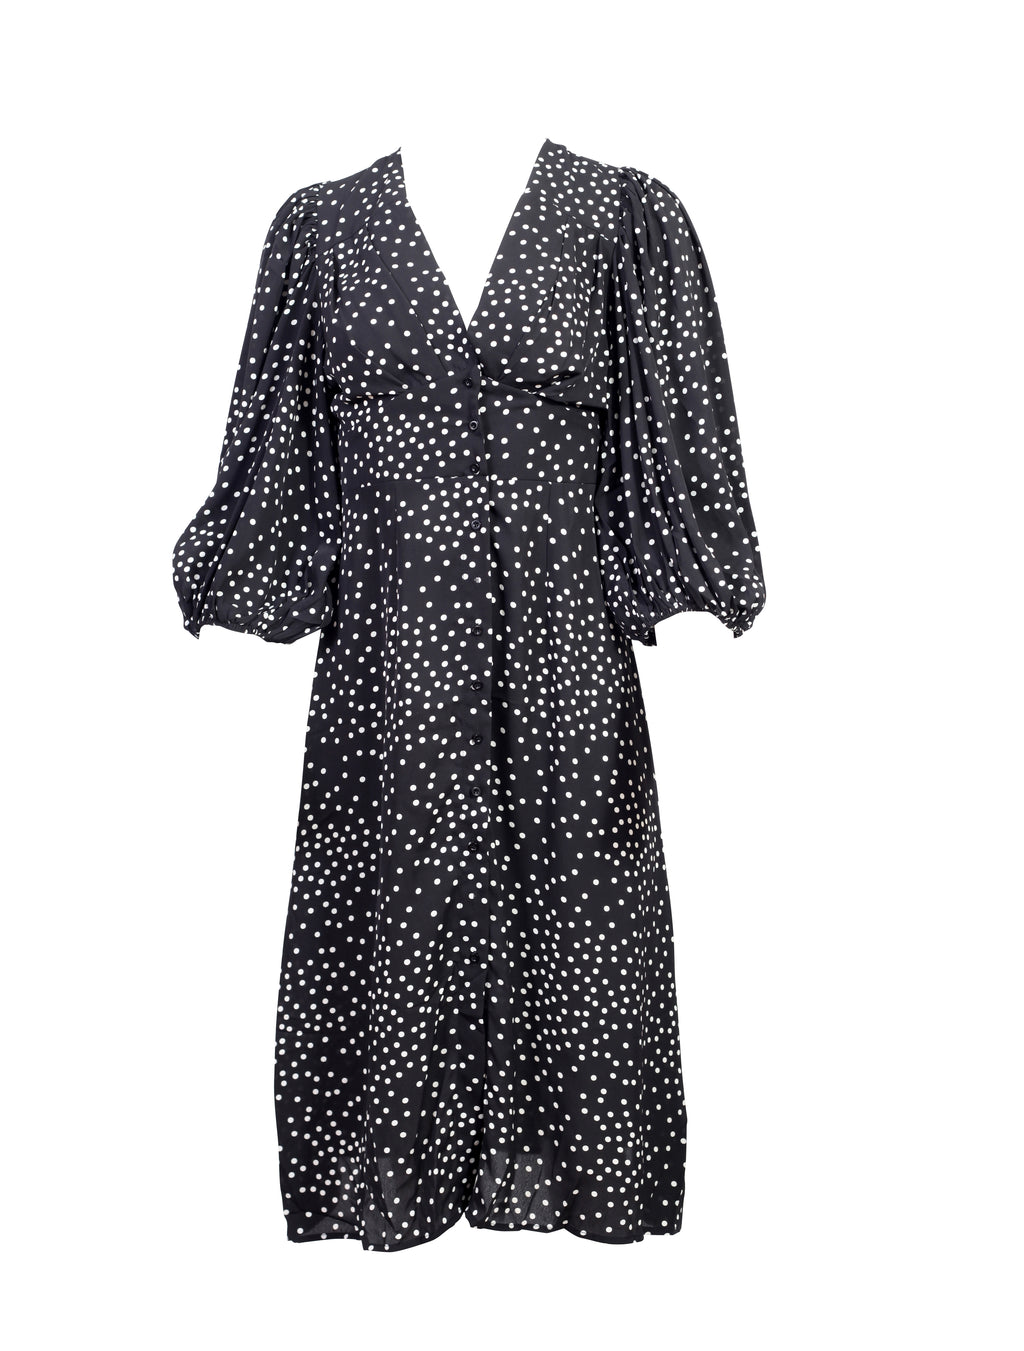 front view of a Black shirt dress with white polka dots